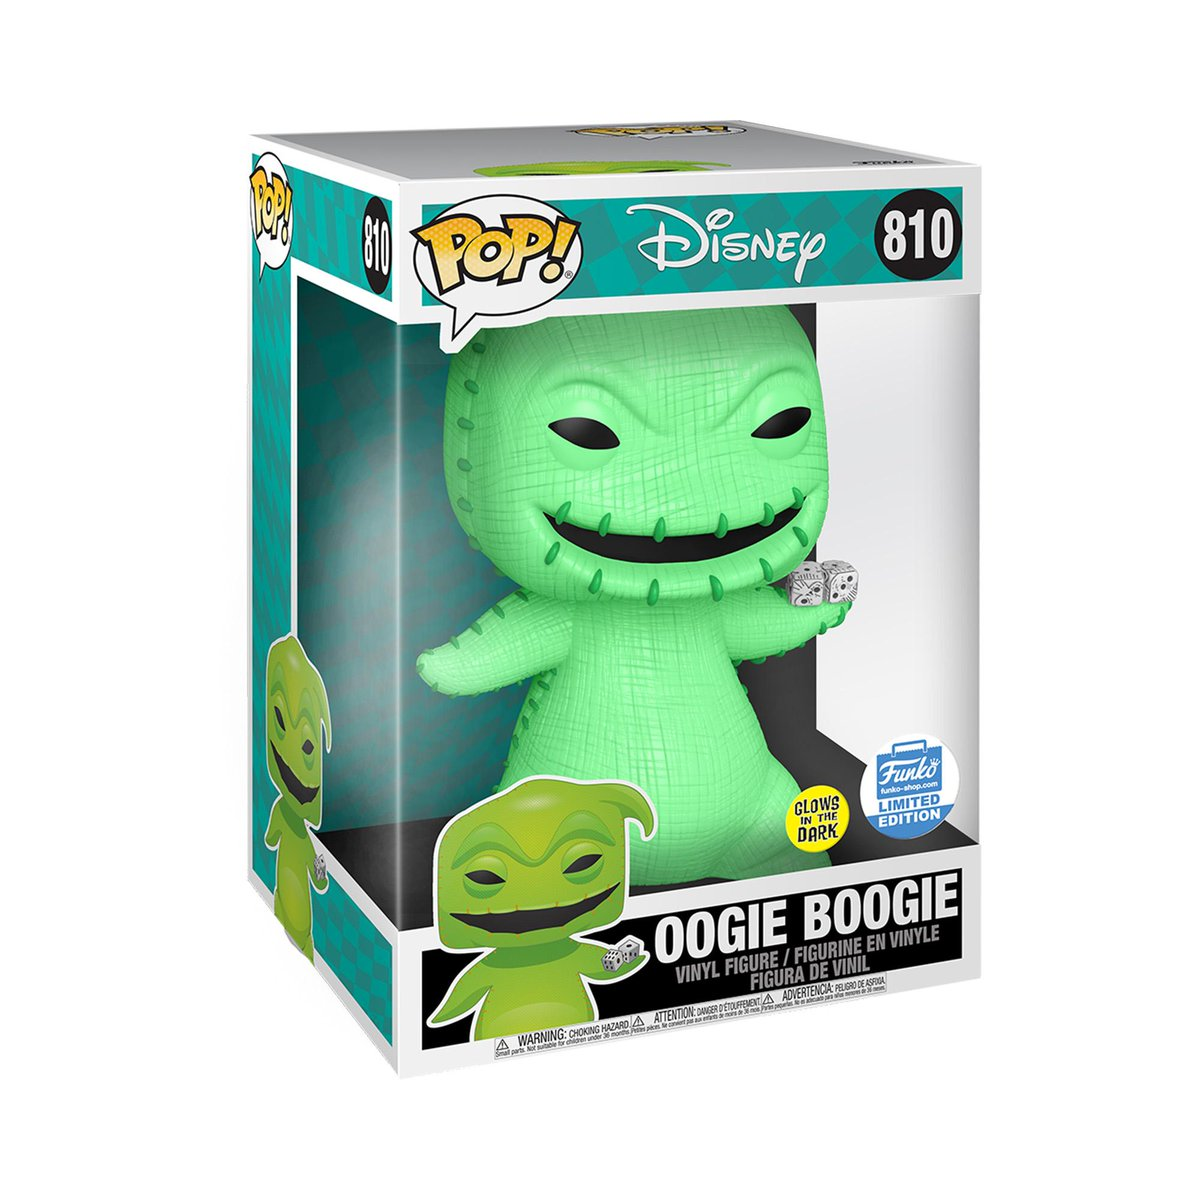 "RT & follow @OriginalFunko for the chance to WIN this Funko exclusive 10"" (Glow-in-the-Dark) Oogie Boogie Pop! #Funko #Funkogiveaway #Giveaway #Disney"